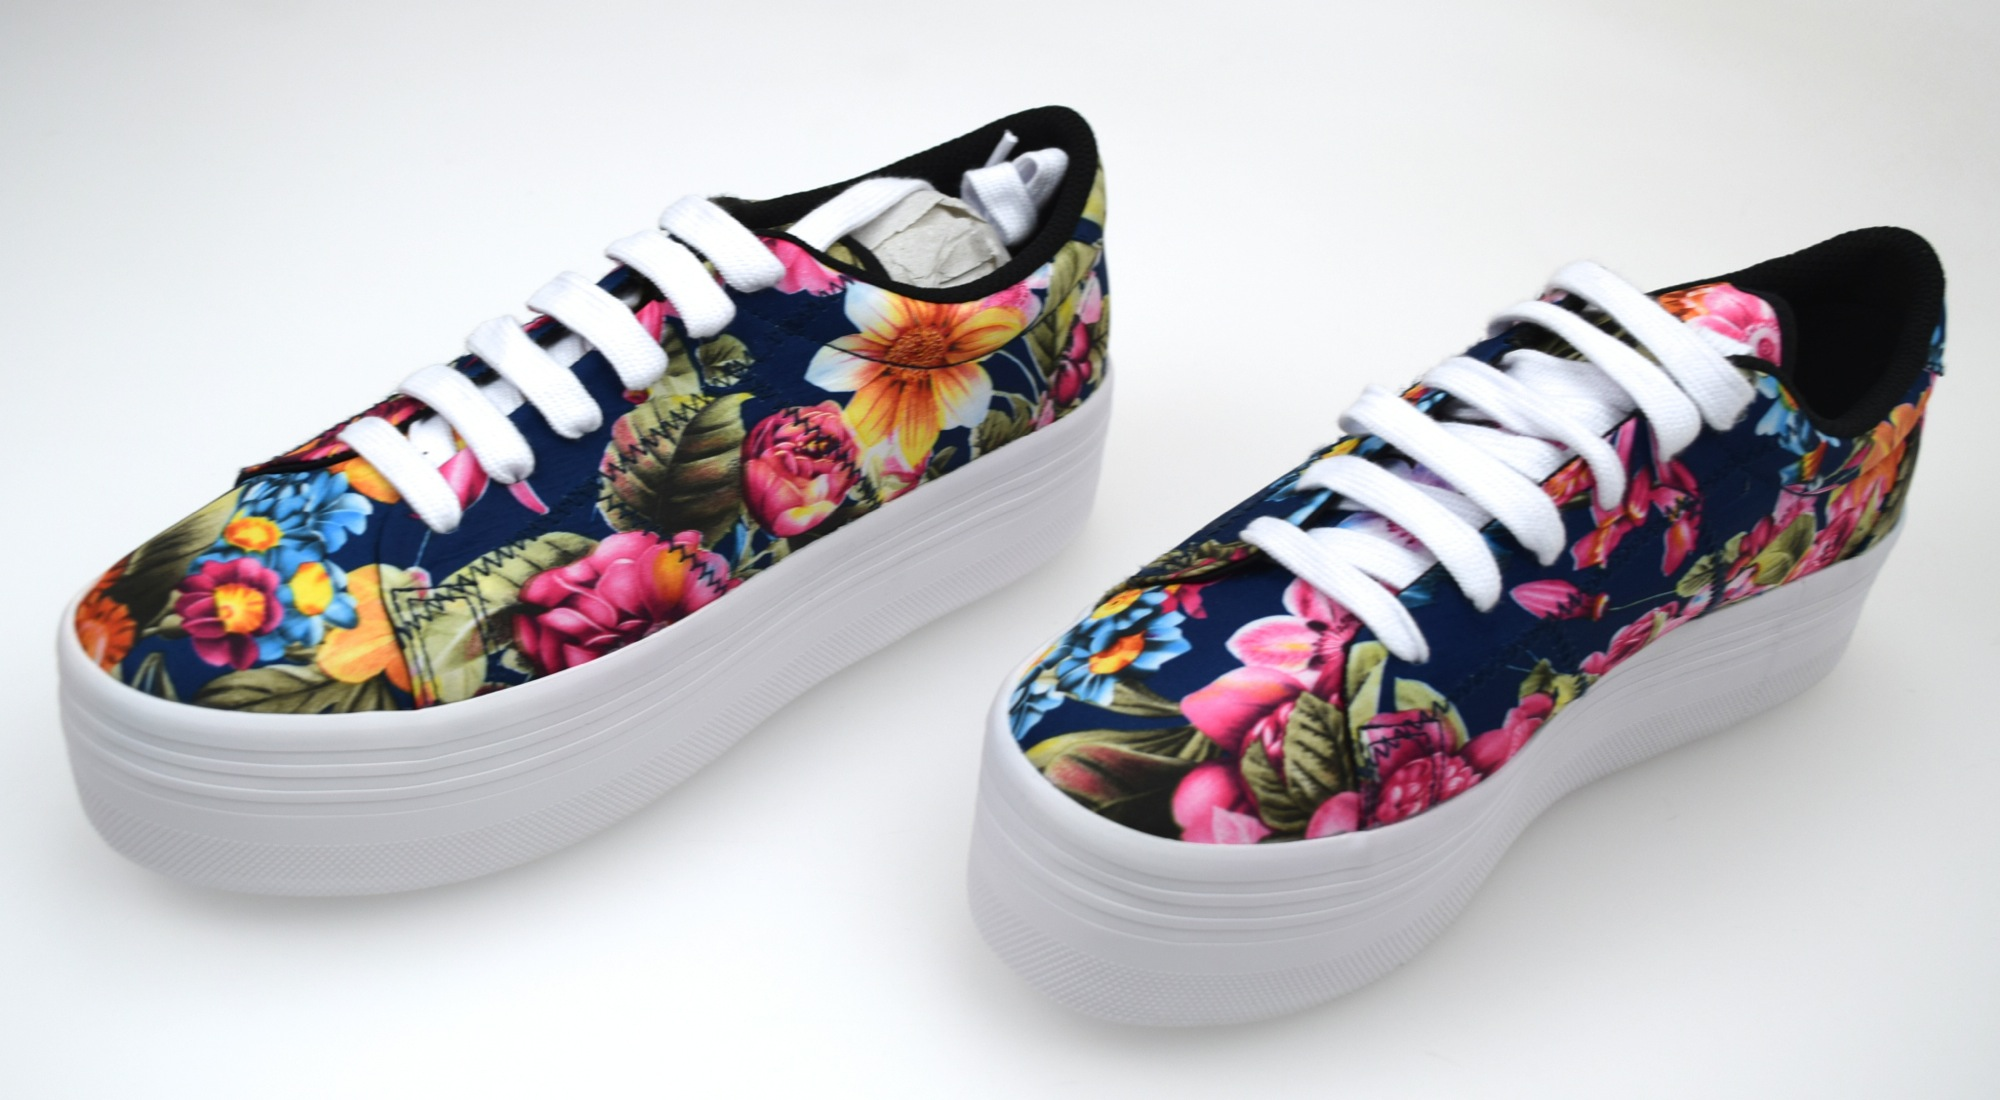 JEFFREY JEFFREY JEFFREY CAMPBELL Damenschuhe SNEAKER Schuhe WITH WEDGE CASUAL FREE TIME ZOMG FLORAL fa79a2